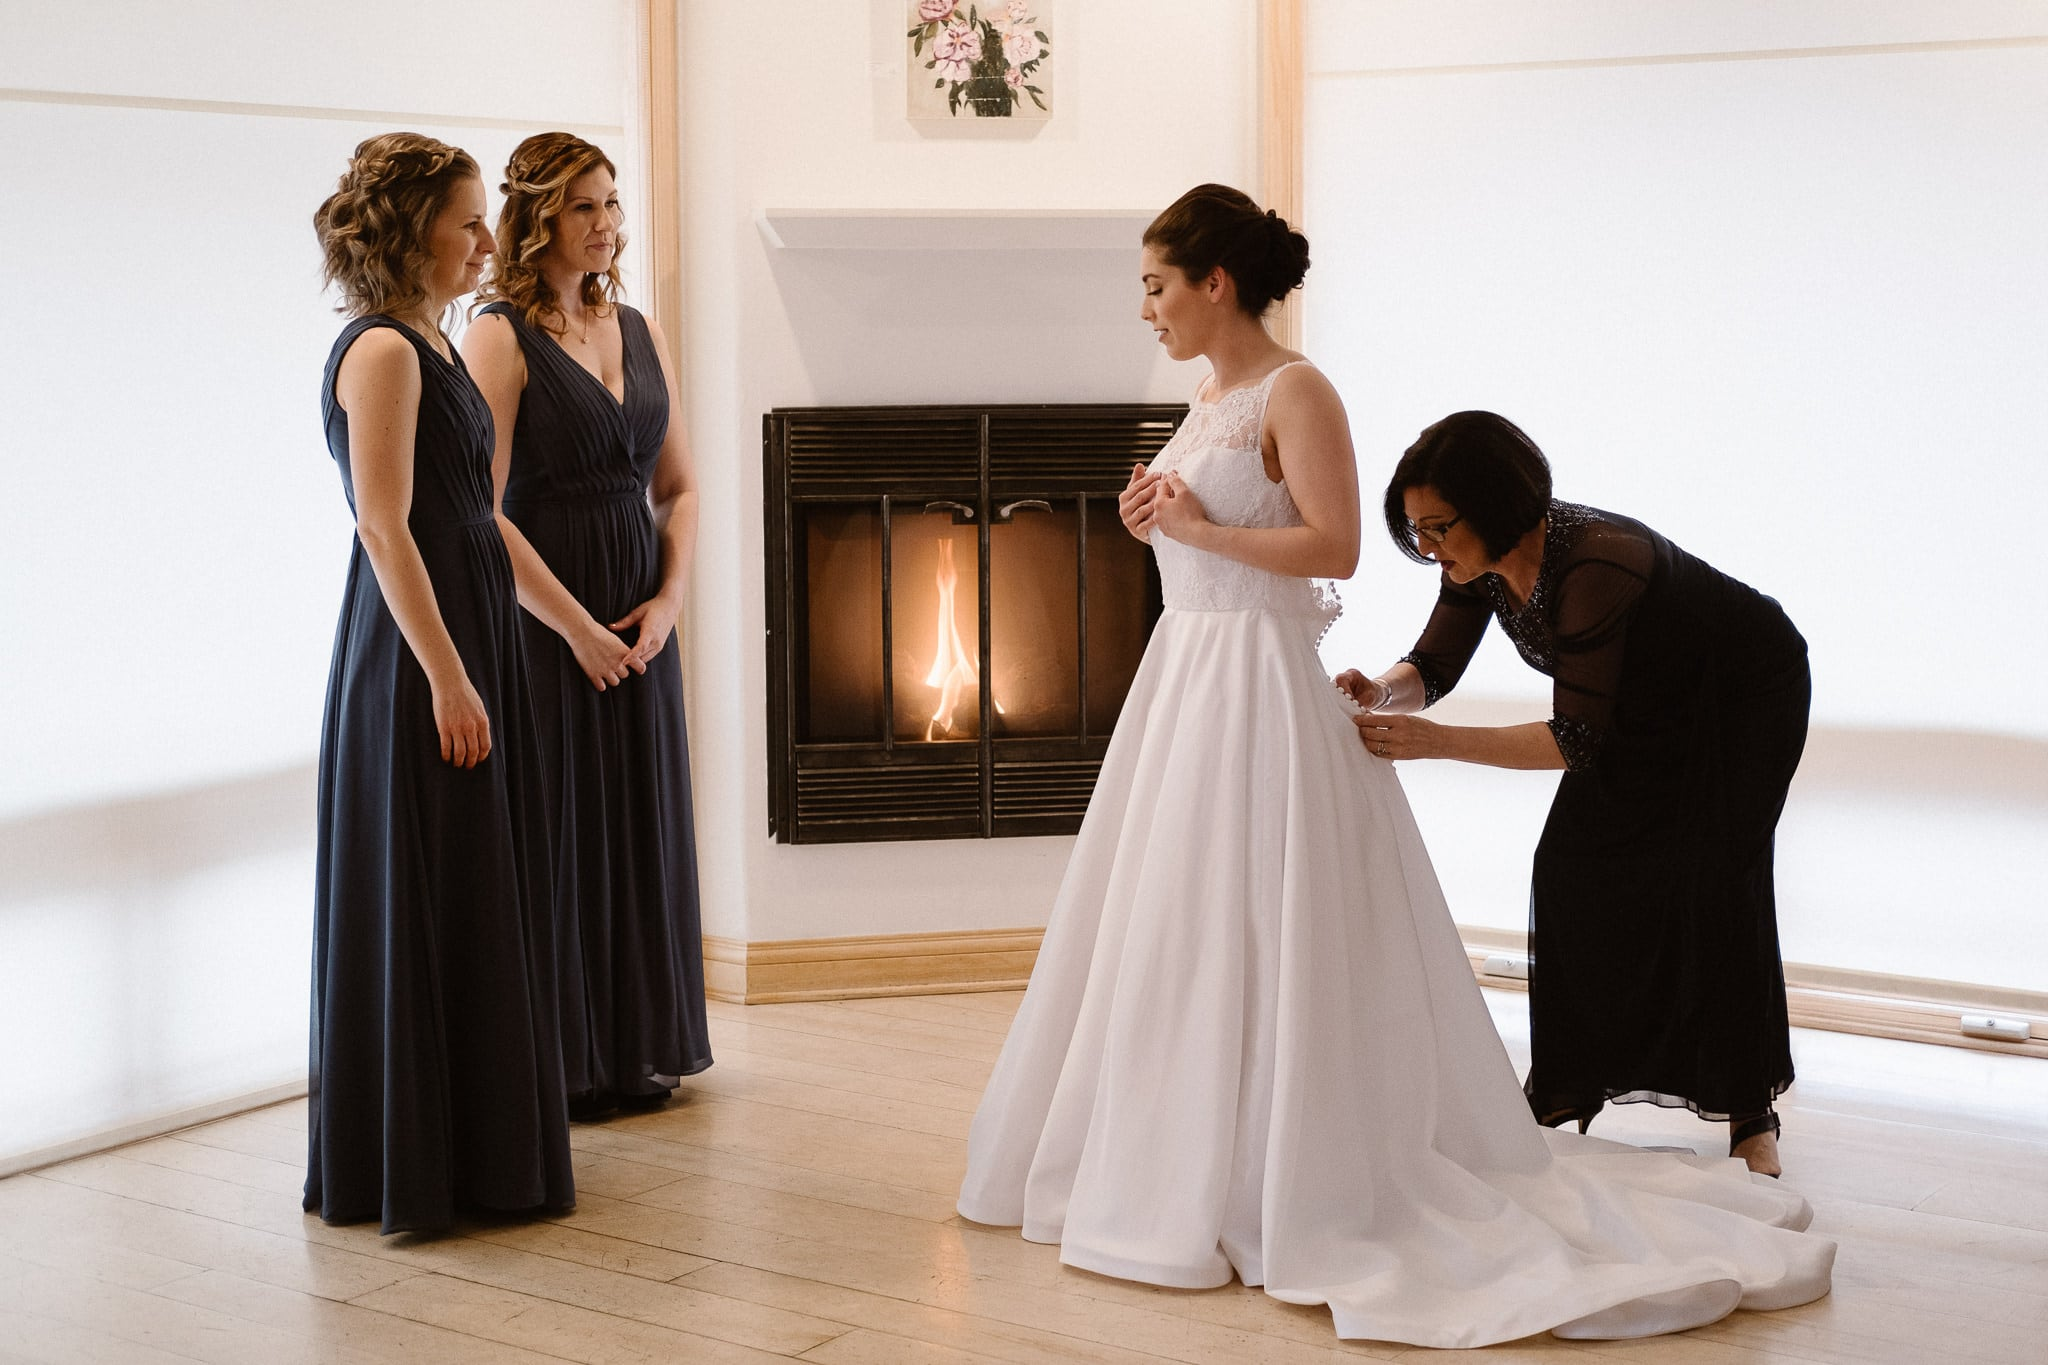 Rembrandt Yard wedding photographer, Boulder wedding photographer, Colorado Jewish wedding, bride and bridesmaids getting ready in front of fireplace